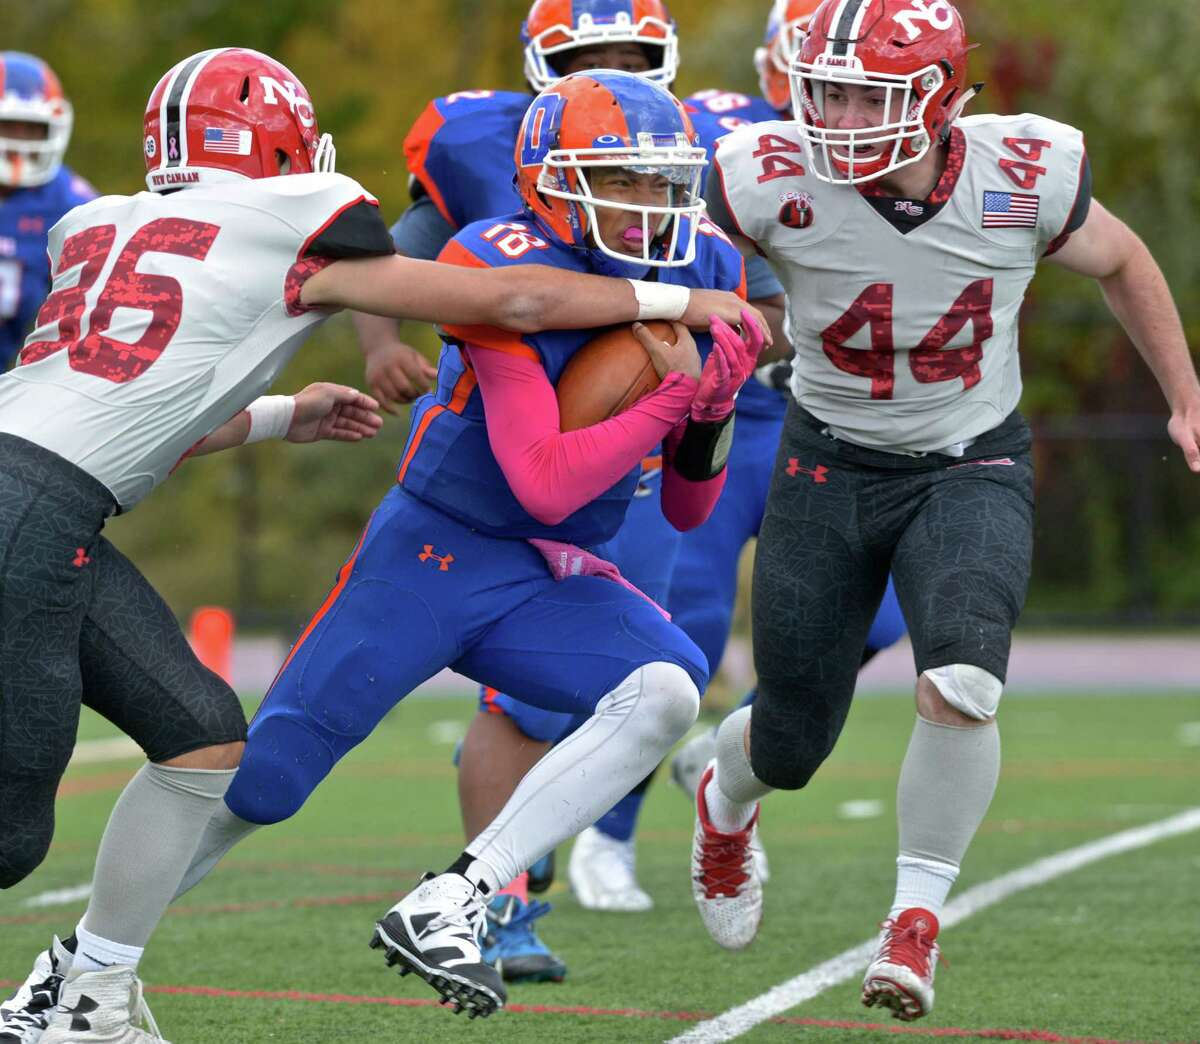 Danbury's Jordan Khuth (18) tries to squeeze between new Canaan's Andrew Bauerfeld (36) and Peter O'Sullivan (44) during their game Saturday Danbury High School.